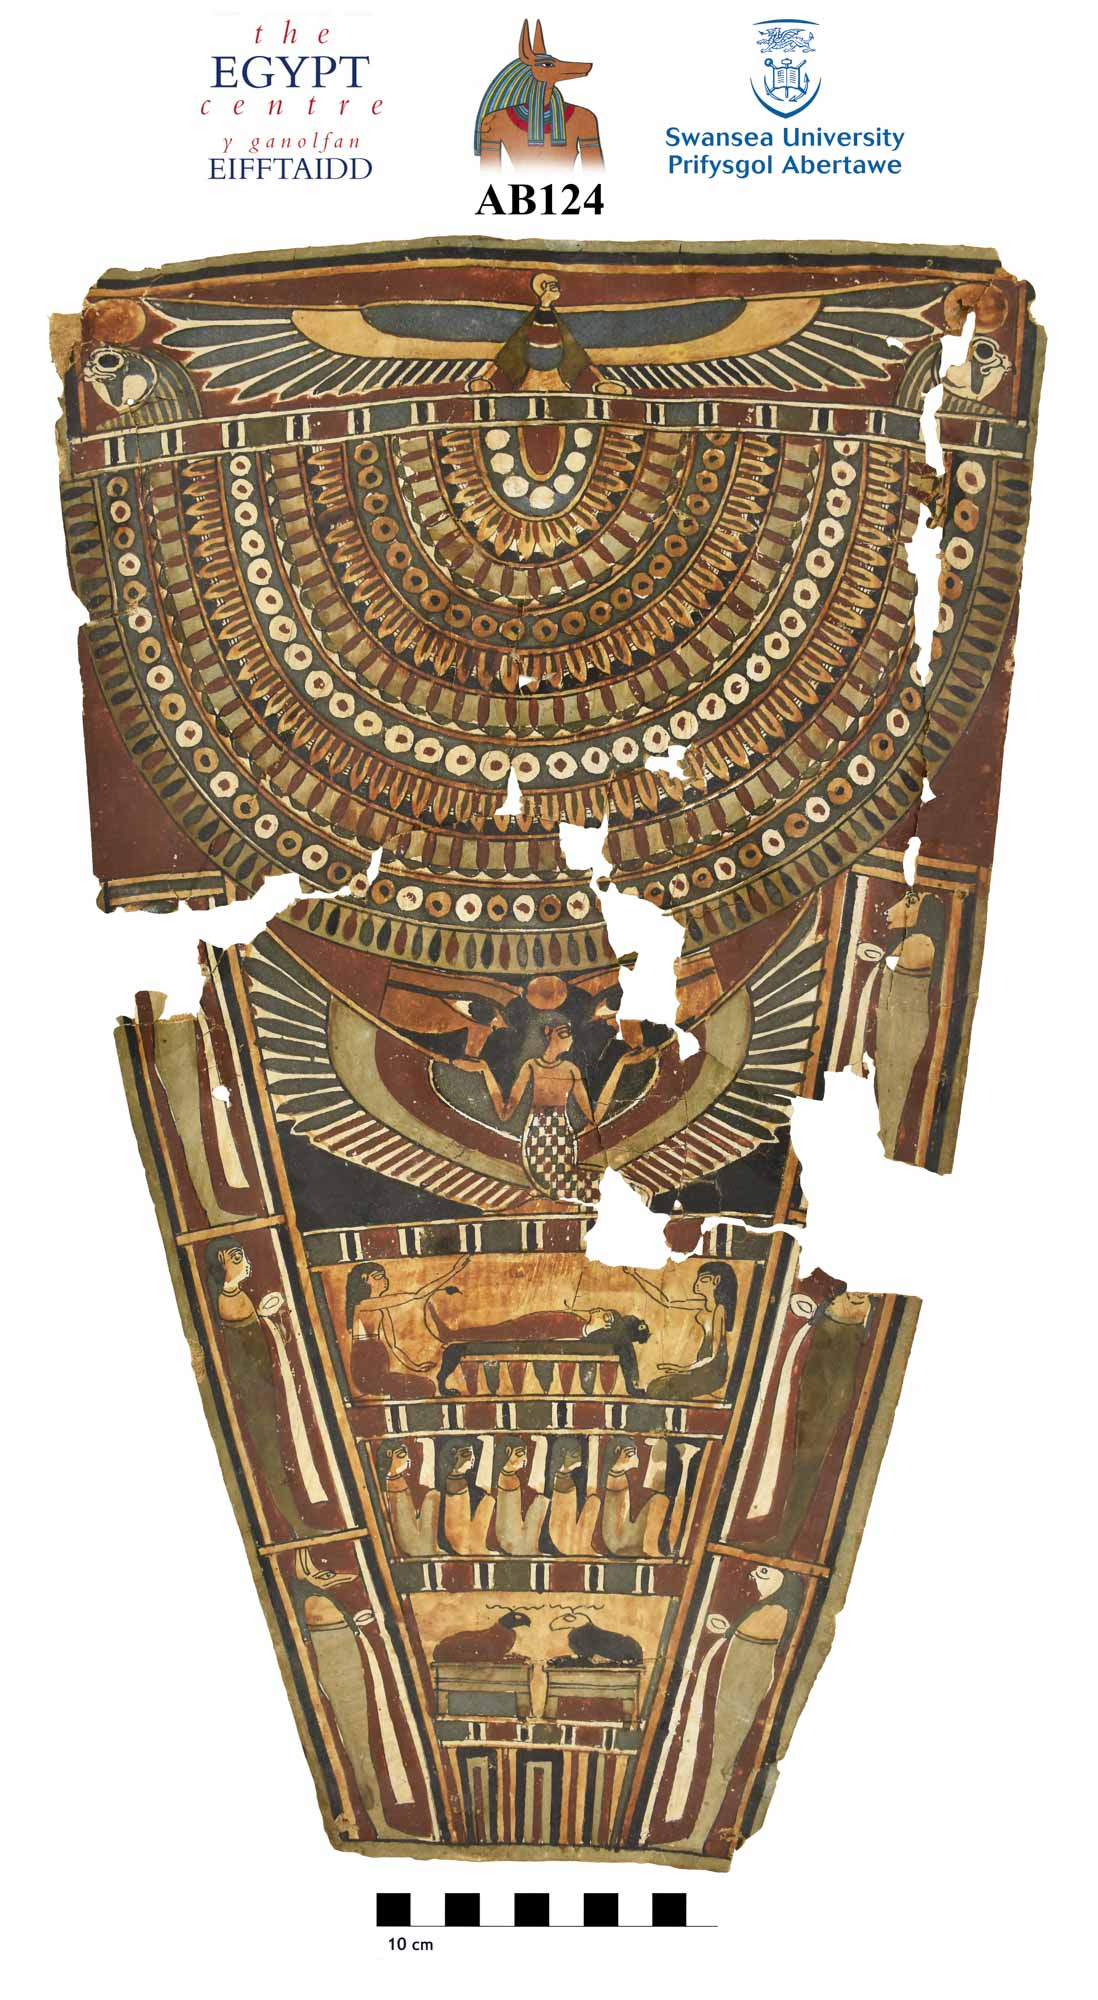 Image for: Cartonnage covering